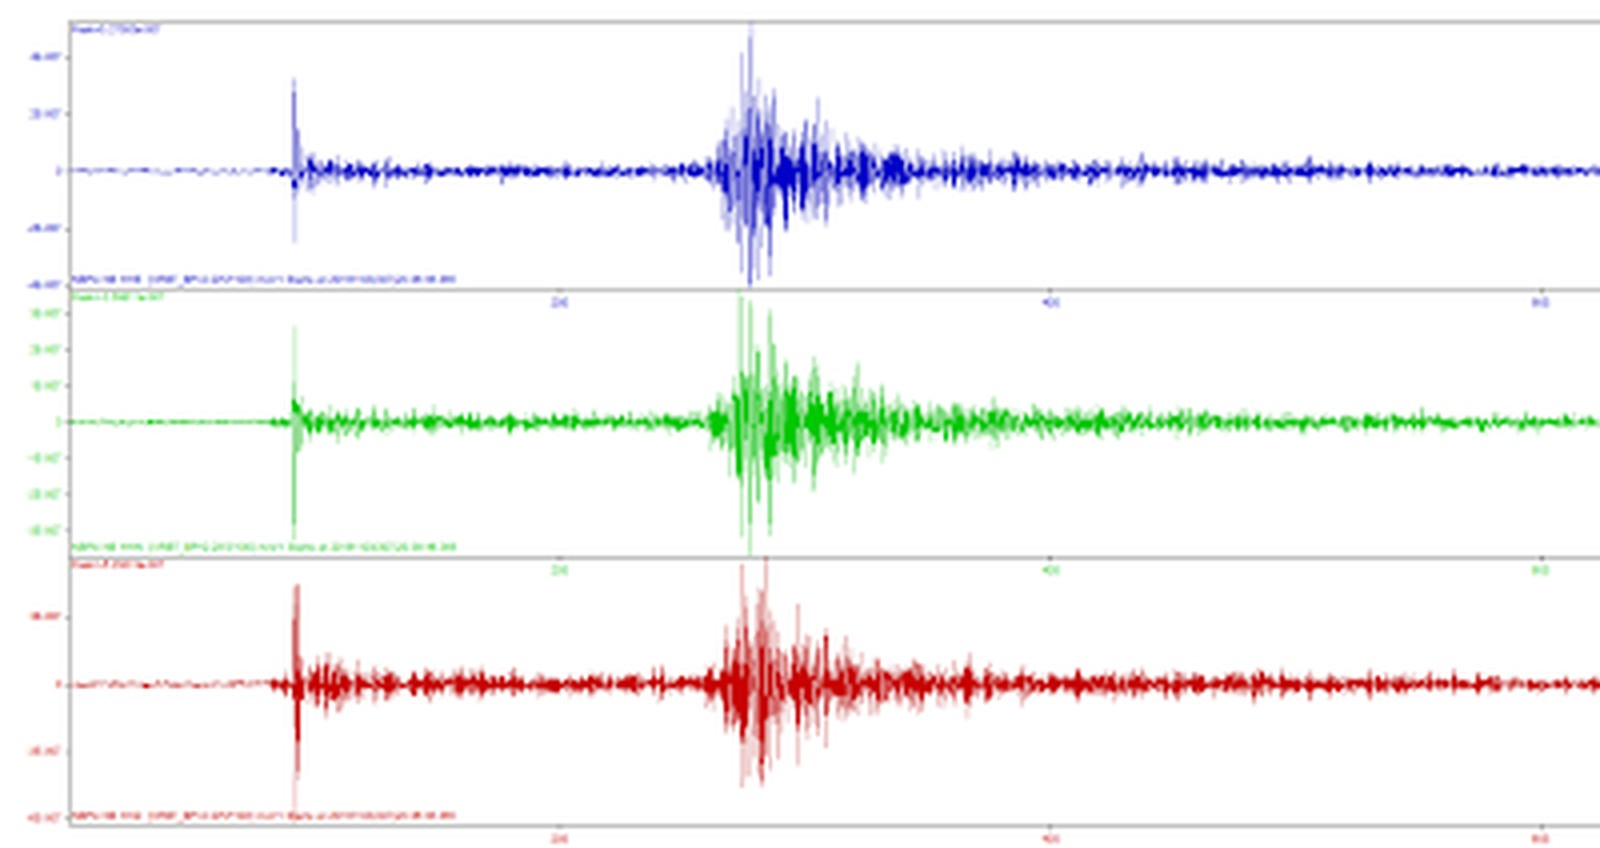 Tremor de terra de magnitude 2.4 é registrado no interior do Ceará